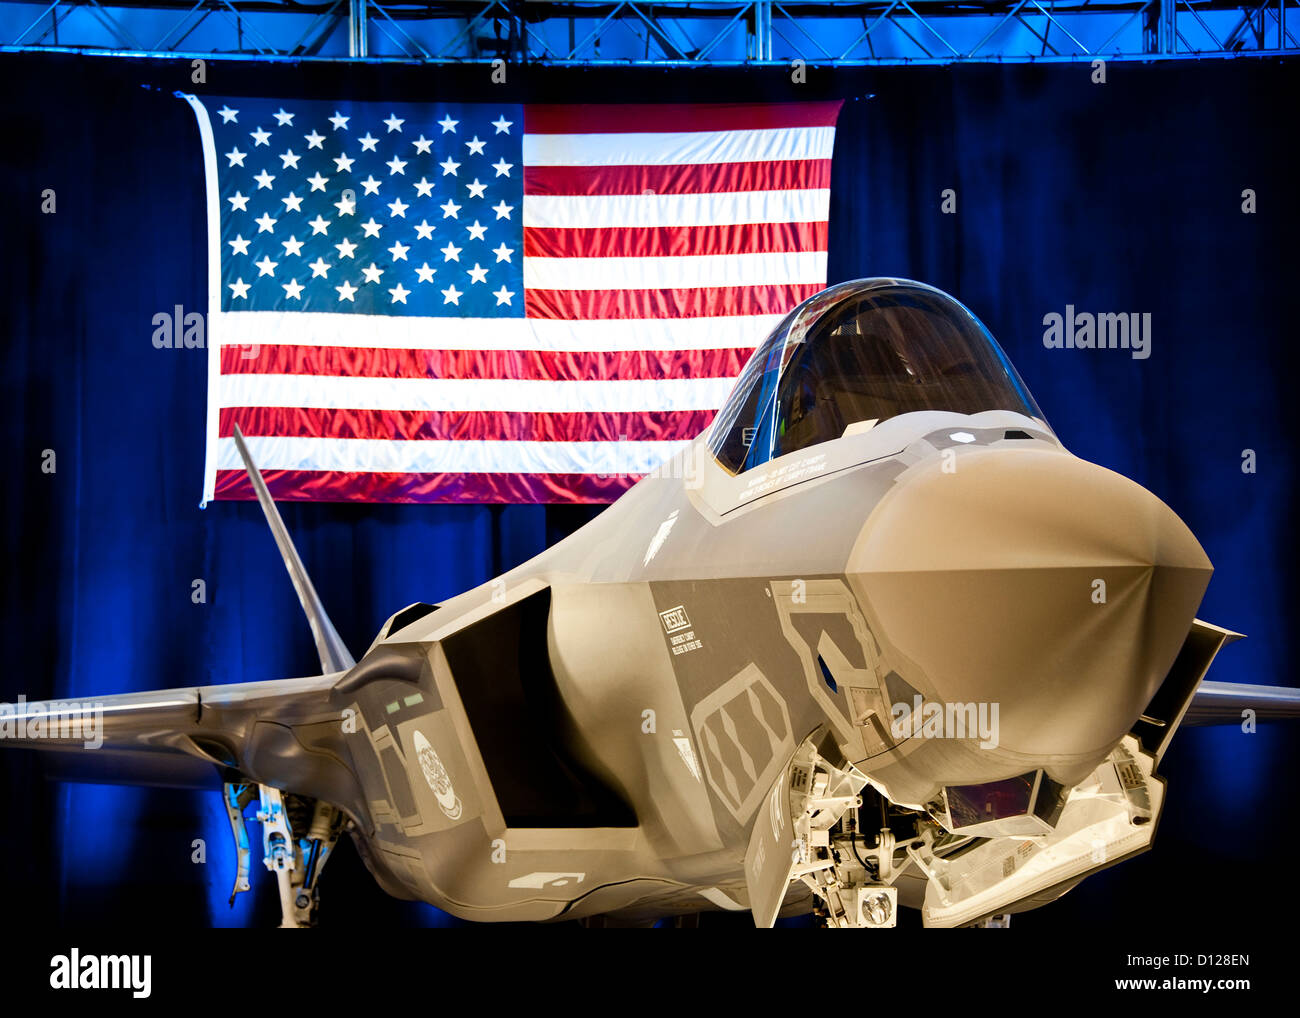 The first F-35 Lightning II joint strike fighter to arrive to the 33rd Fighter Wing was on display during the rollout - Stock Image